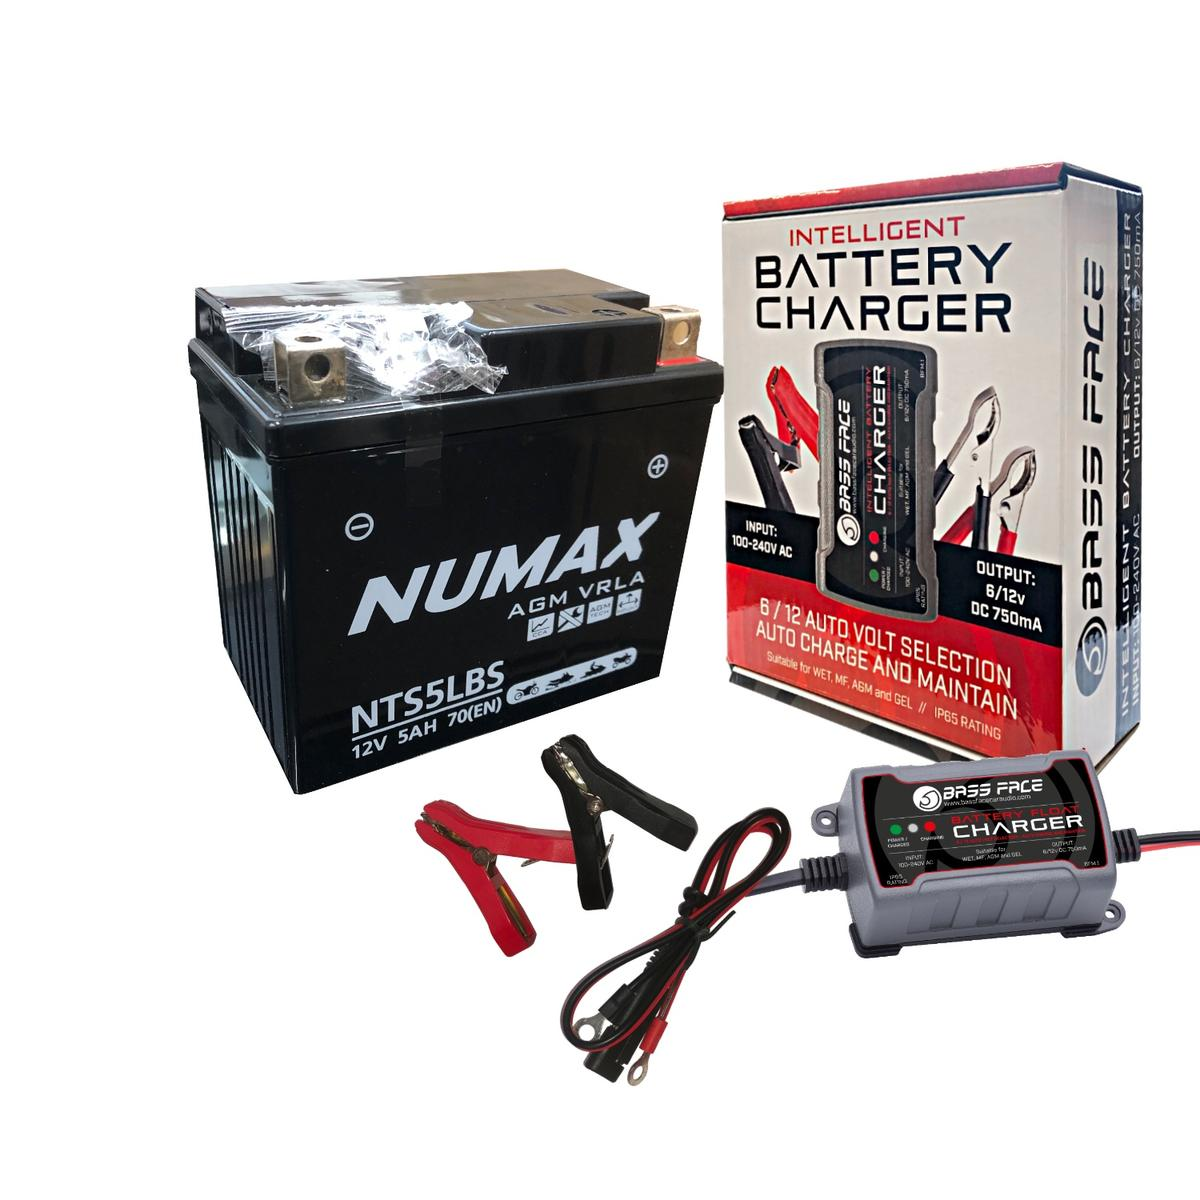 Numax 12v NTS5LBS Motorbike Motorcycle Bike Battery Replaces YTX5-LBS YTX5L-4